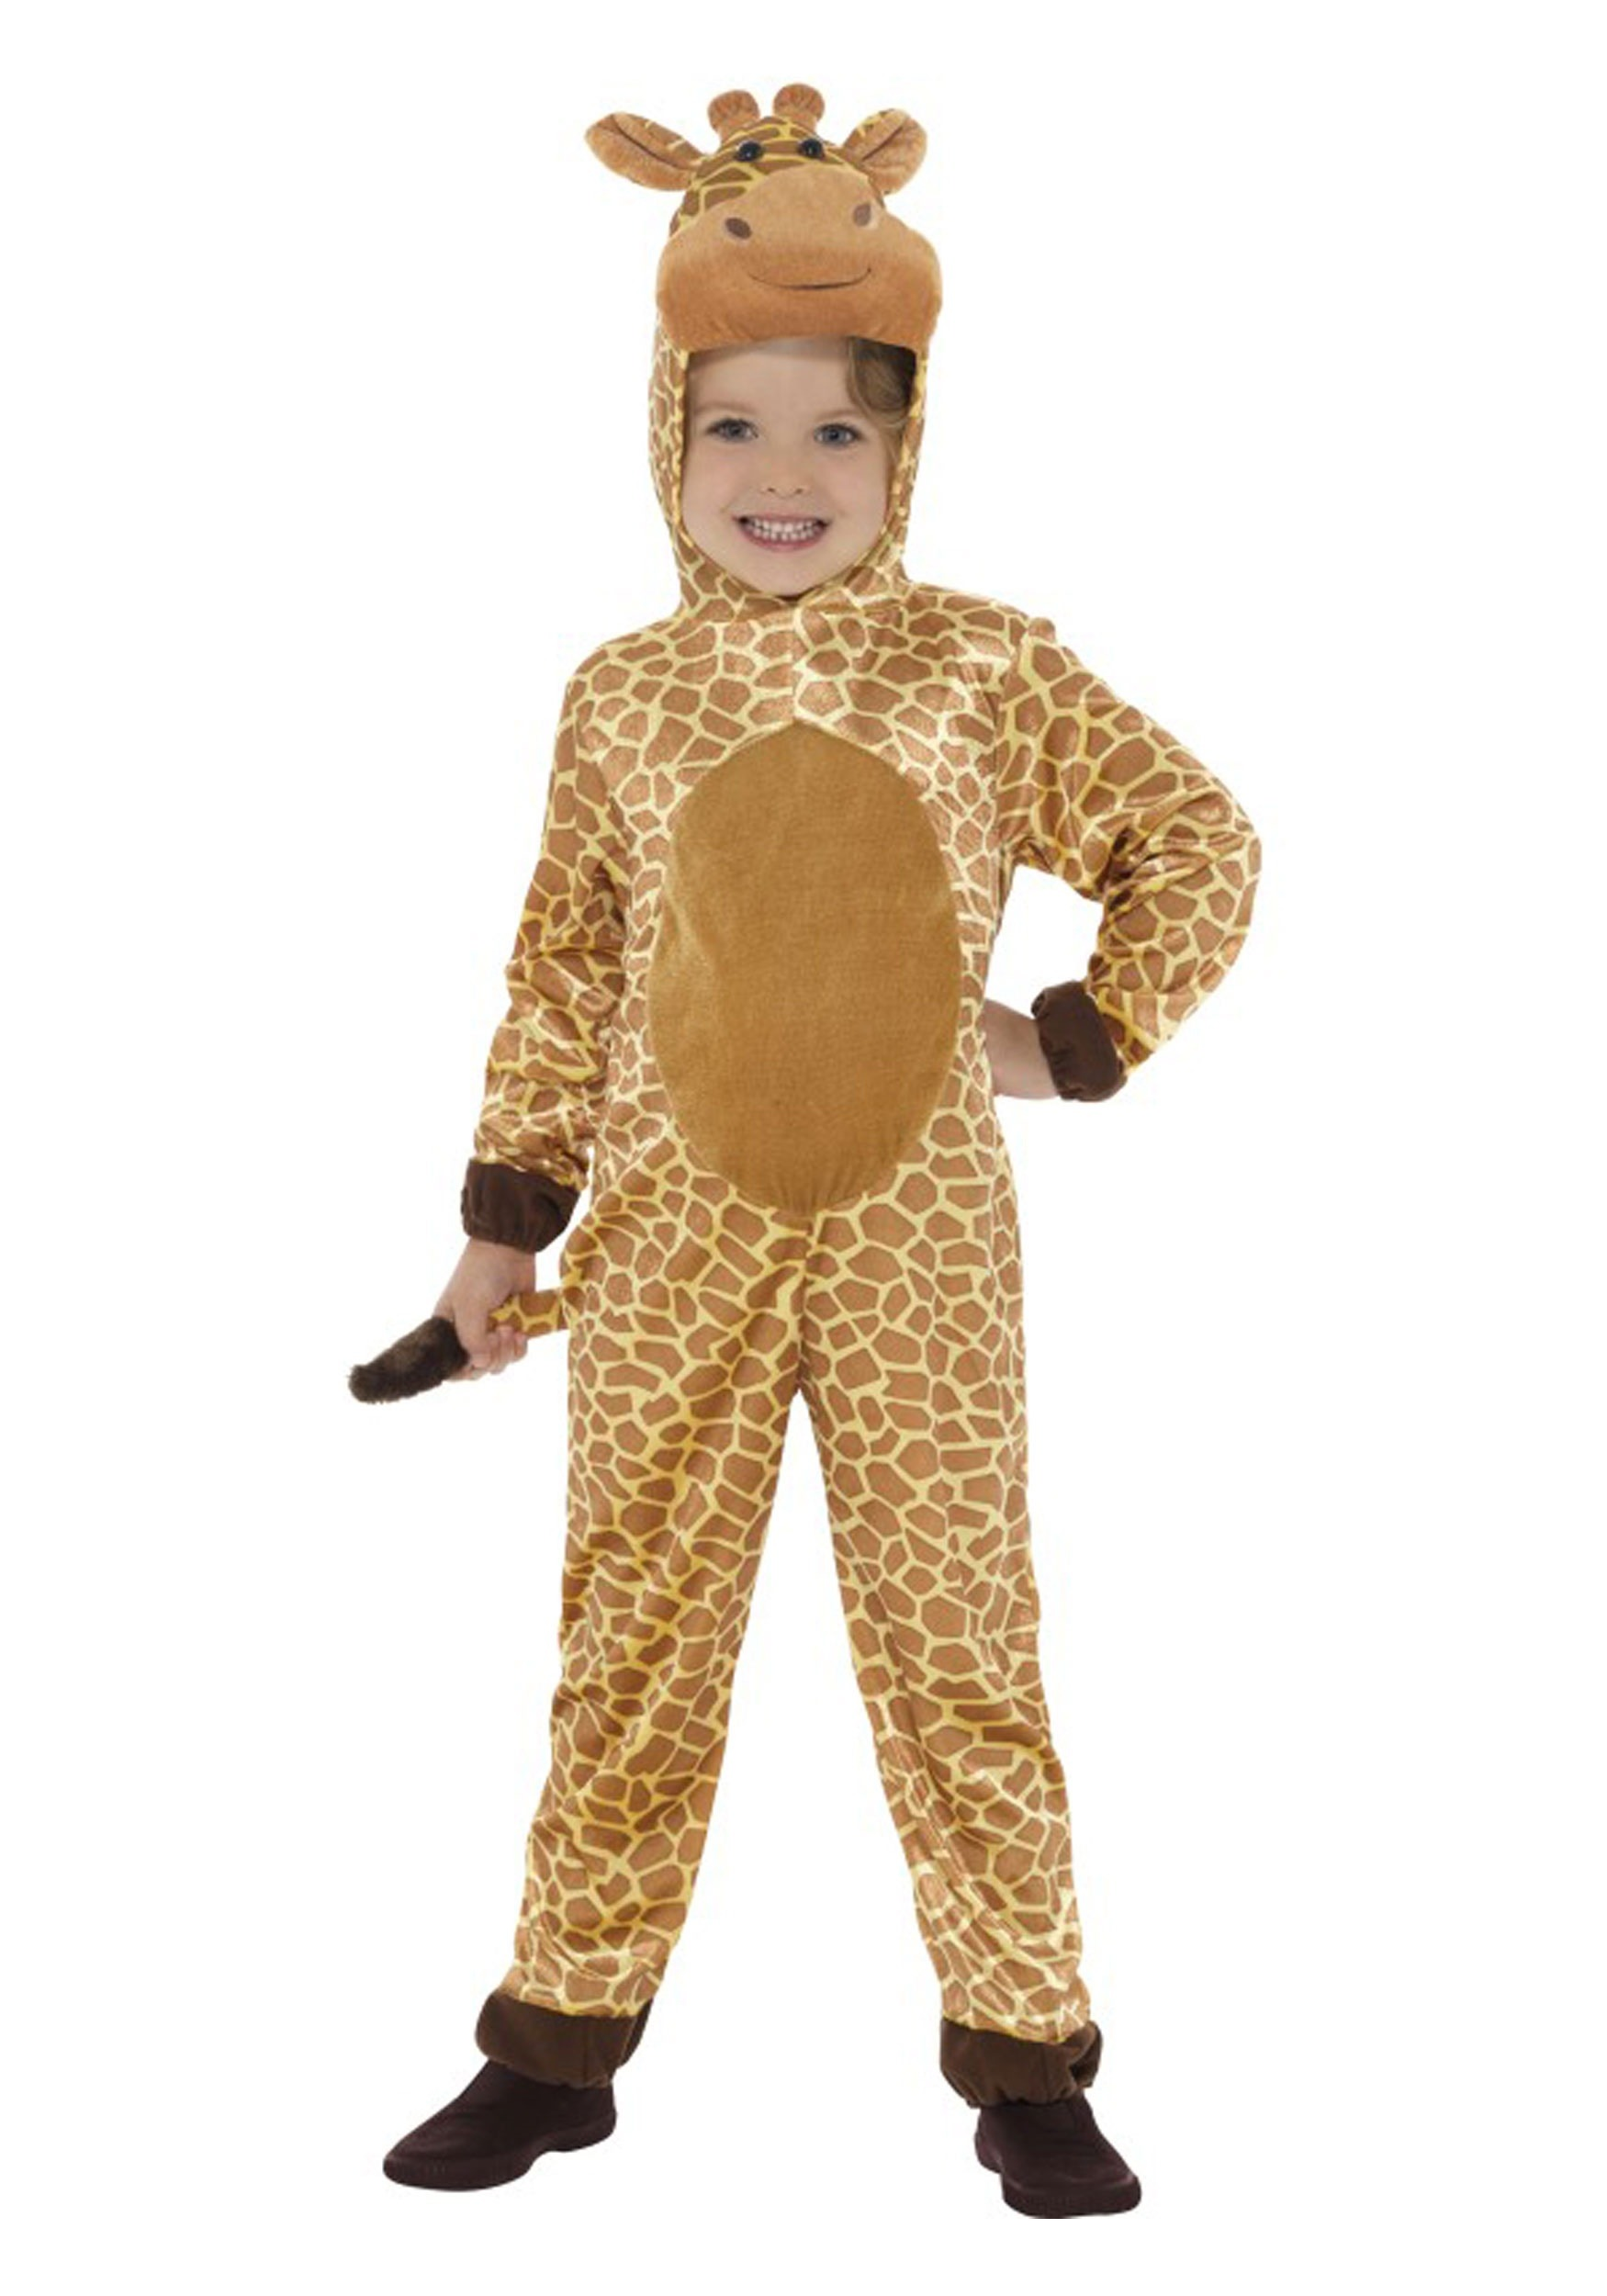 Kids Giraffe Costume  sc 1 st  Halloween Costumes & Giraffe Kids Costume